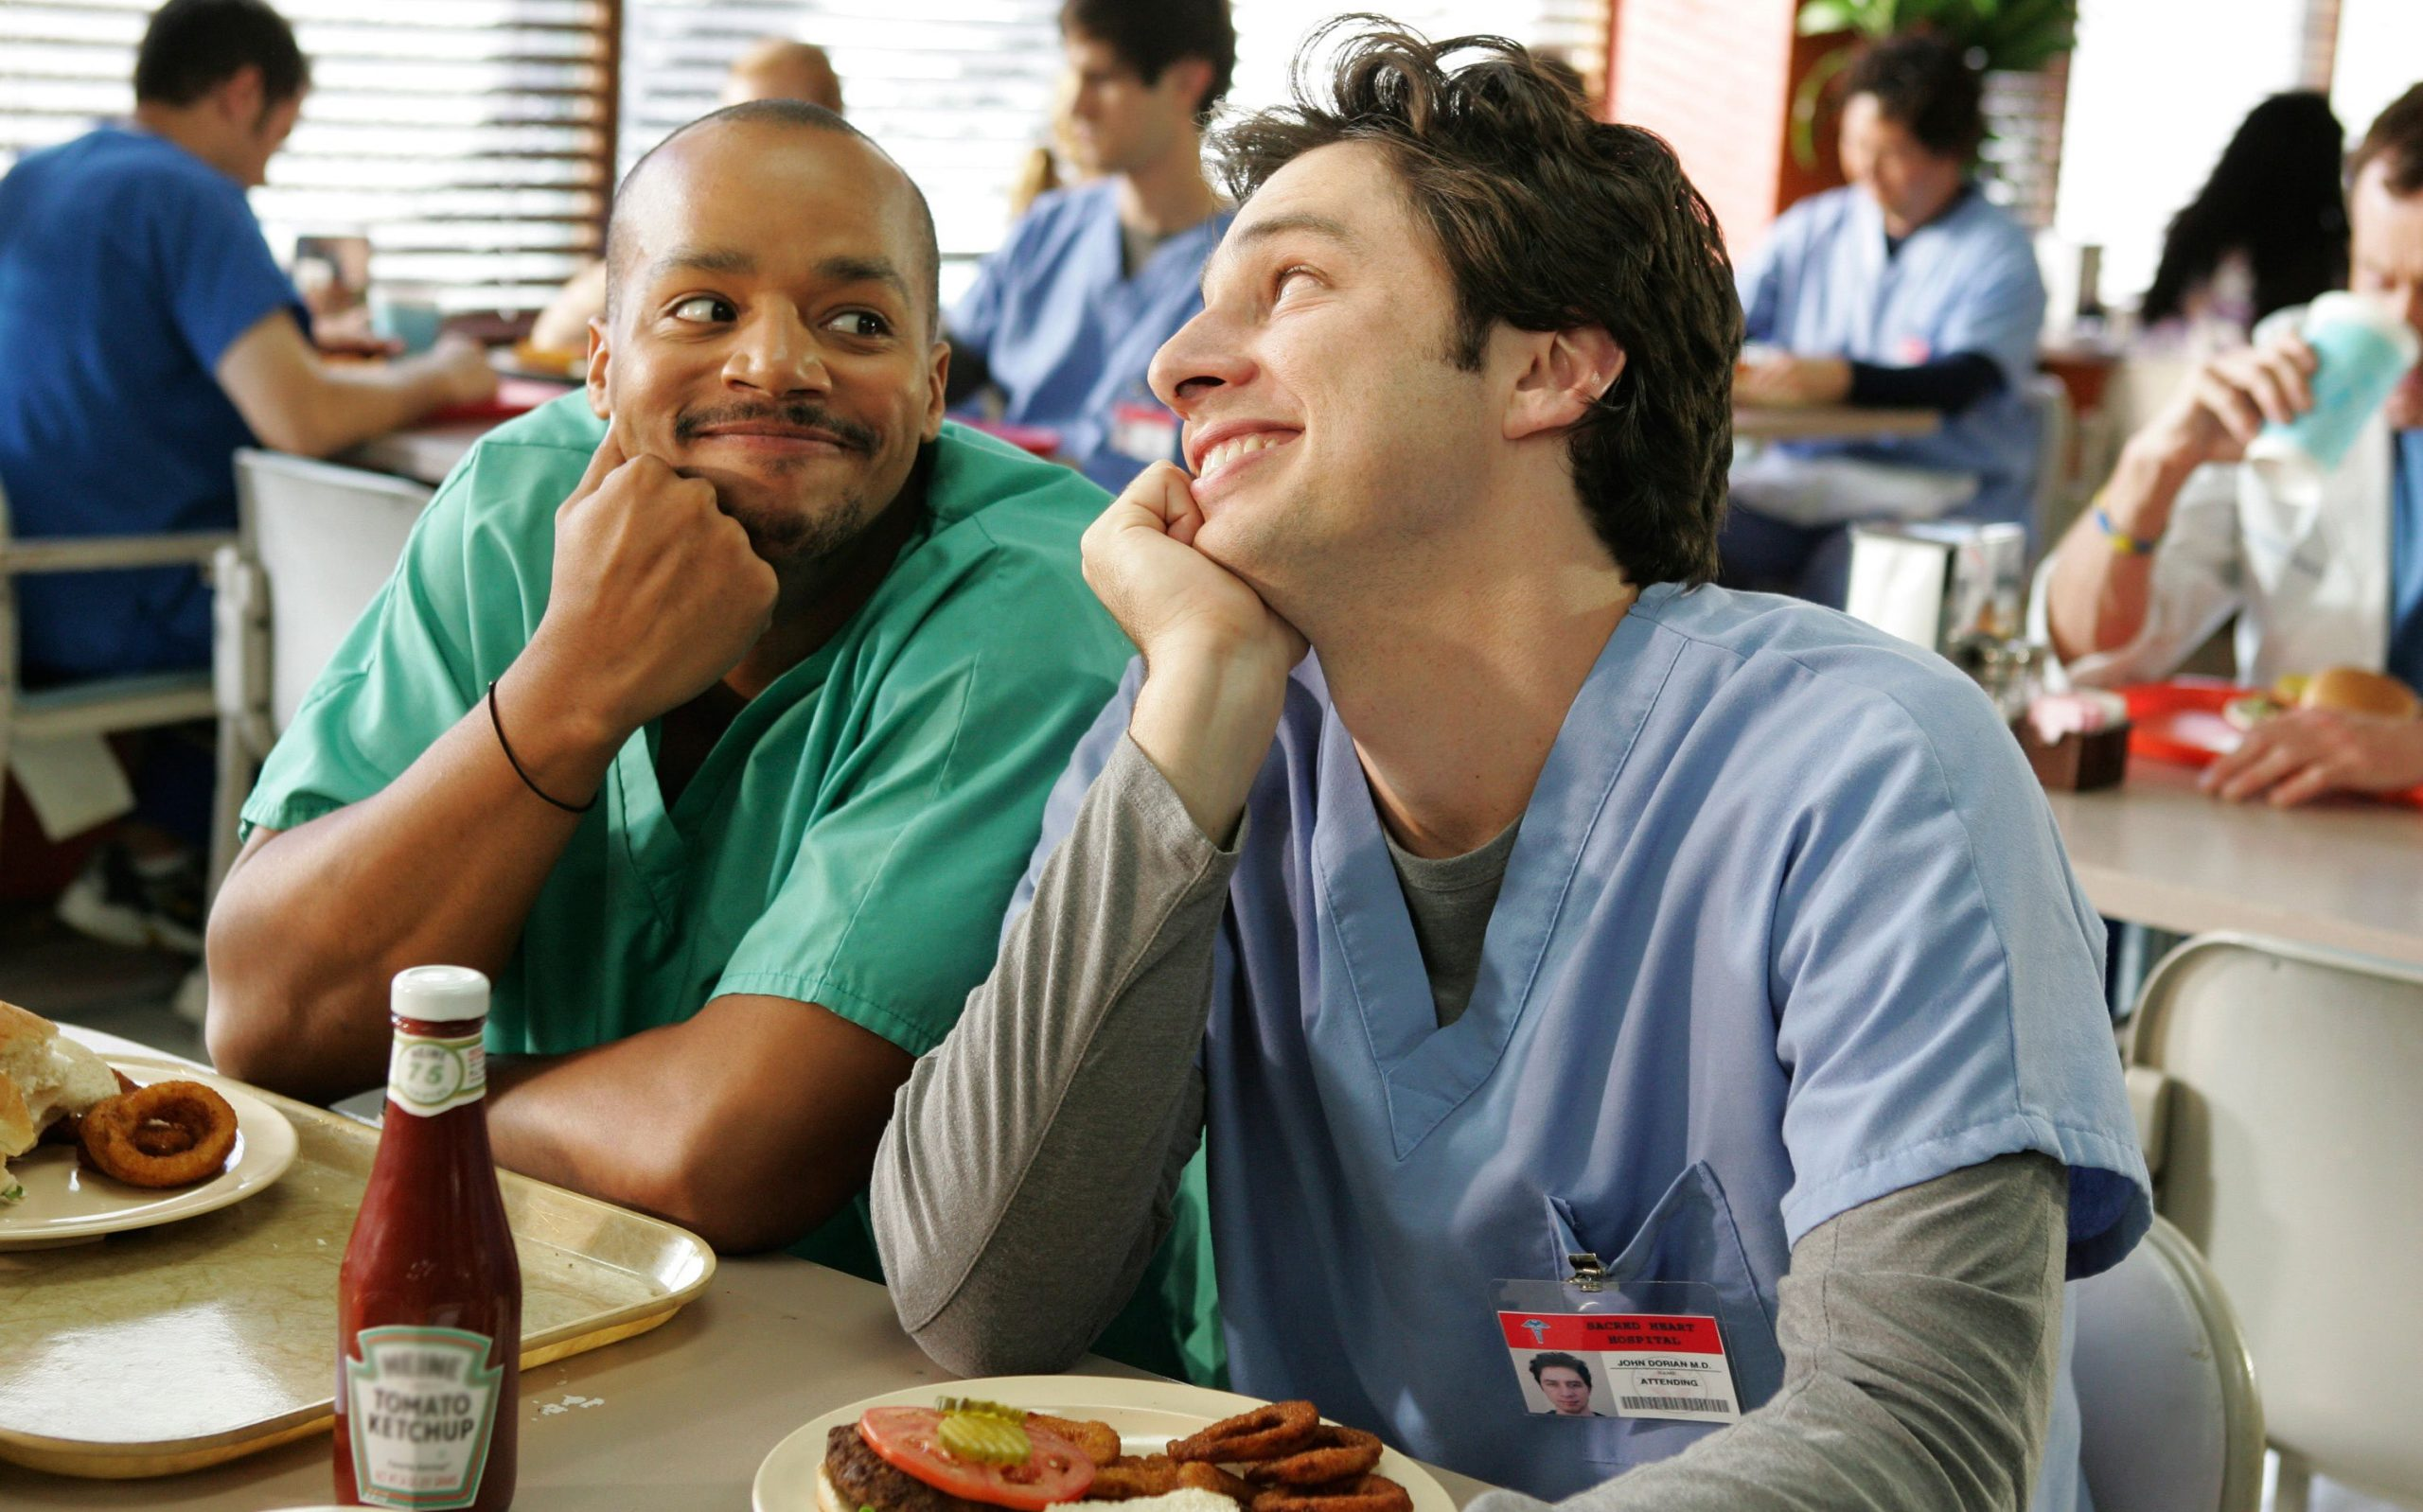 When it Comes to Good Television, Scrubs Most Certainly Isn't M*A*S*H